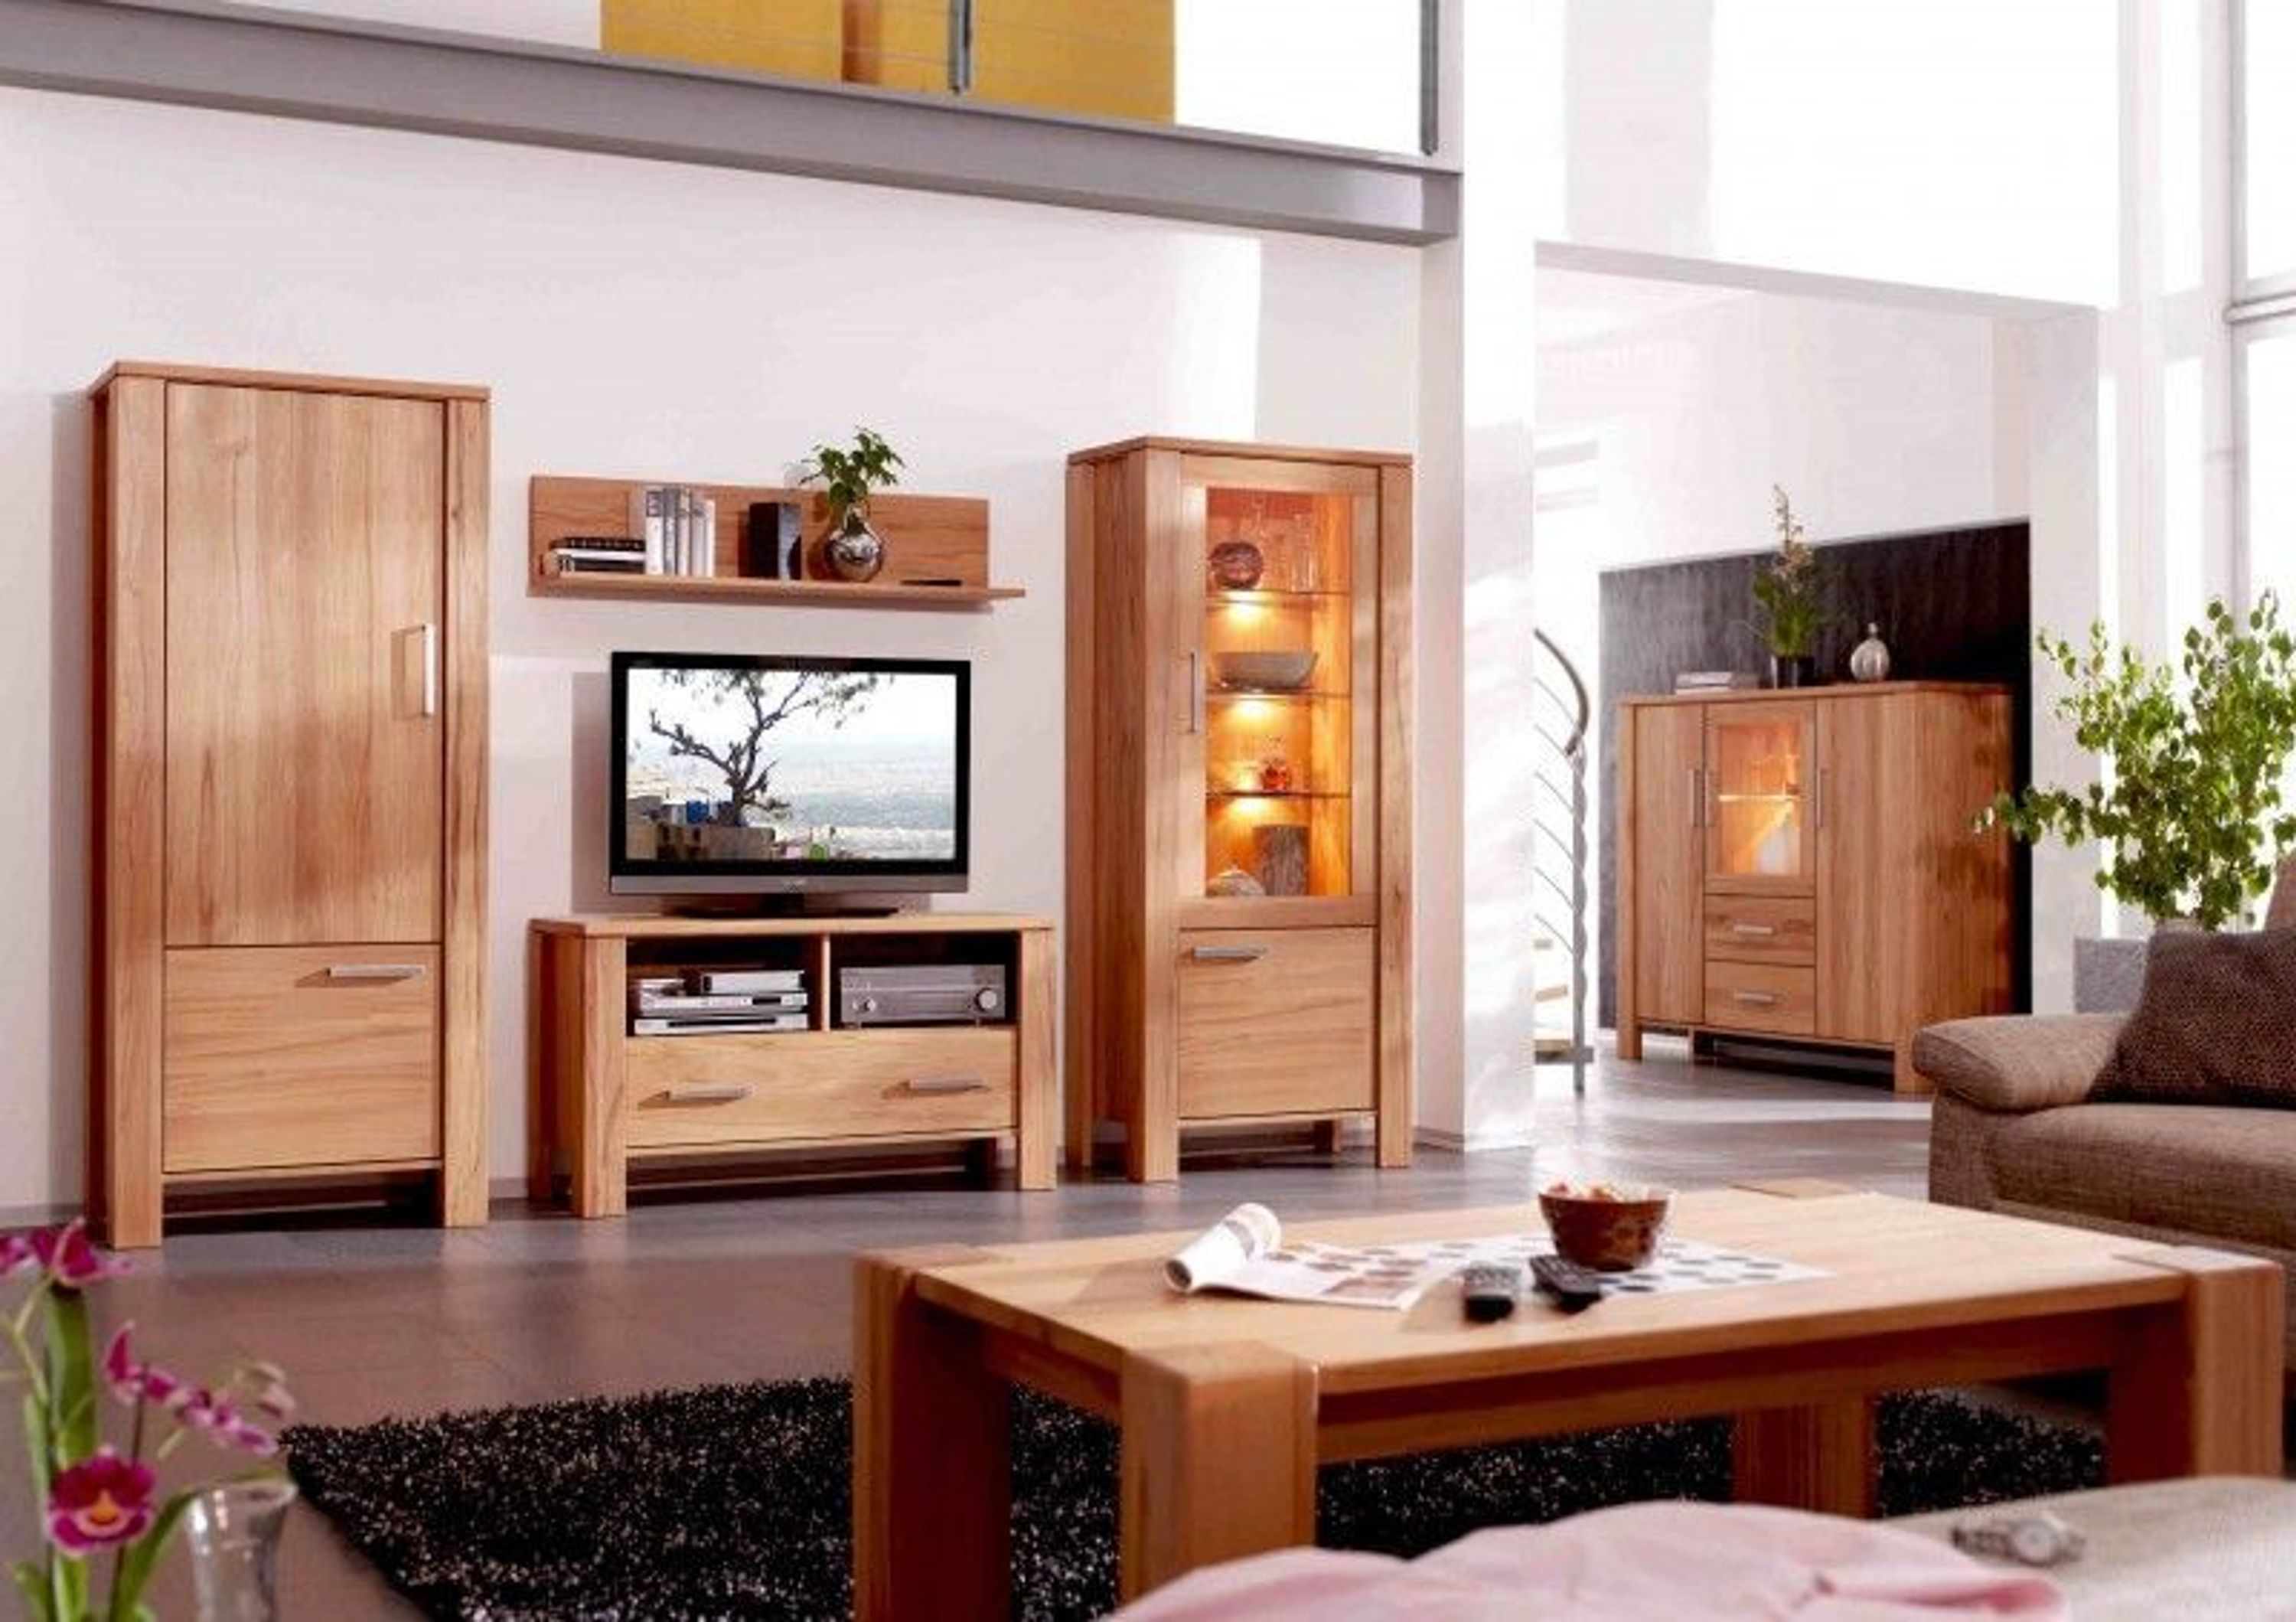 wohnzimmer 6 teilig kernbuche massiv kaufen bei. Black Bedroom Furniture Sets. Home Design Ideas